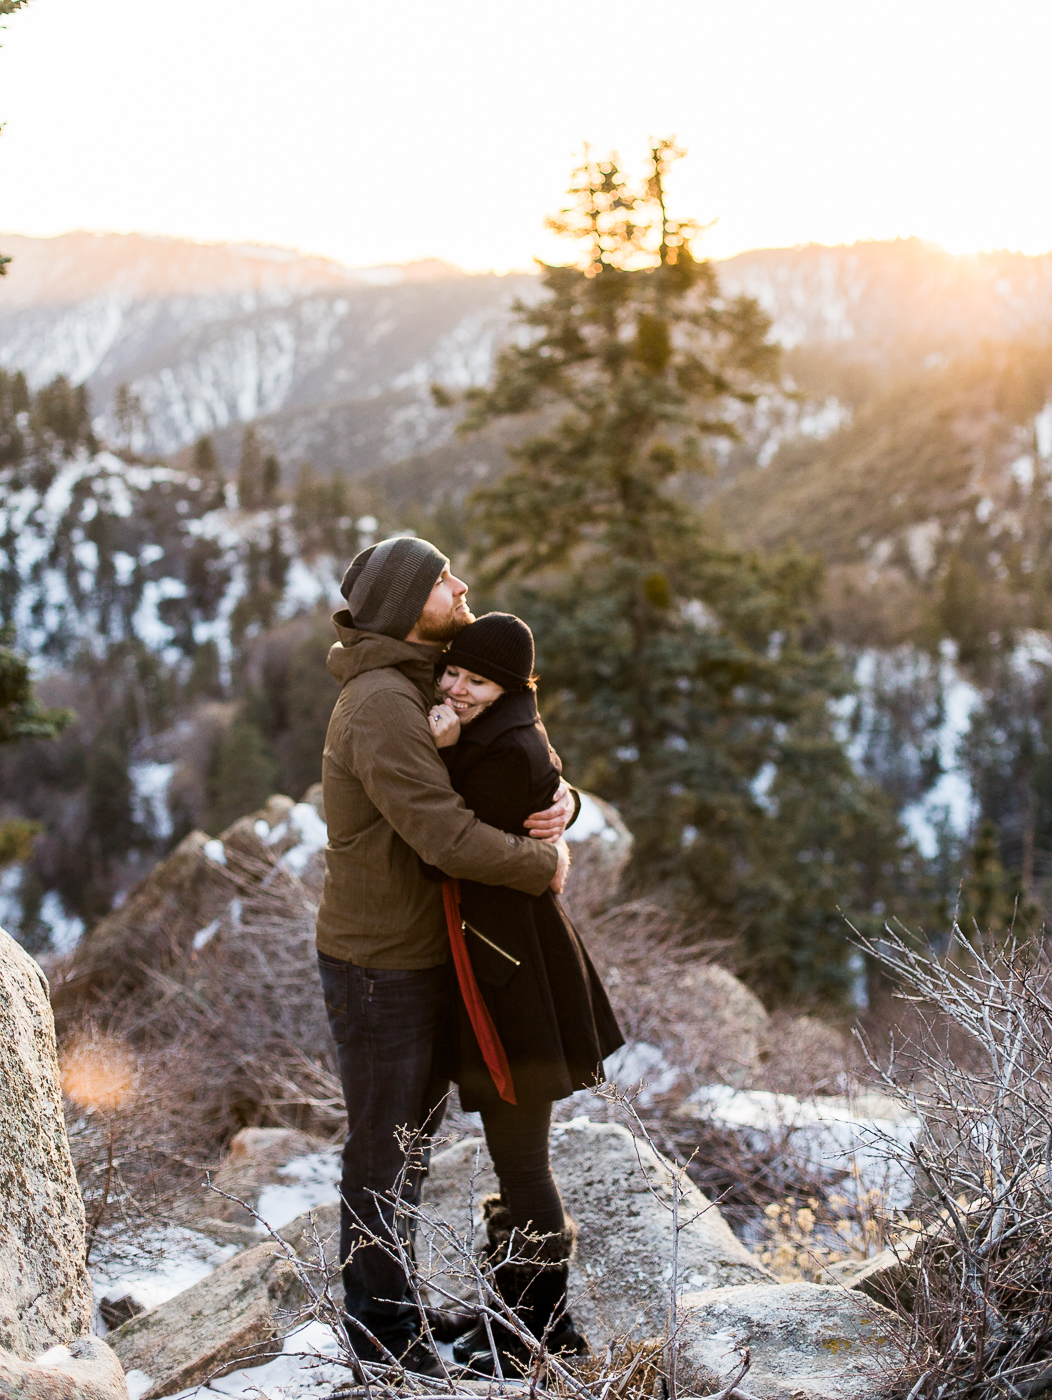 California Big Bear Engagements by Wyoming based photographer, Megan Lee Photography